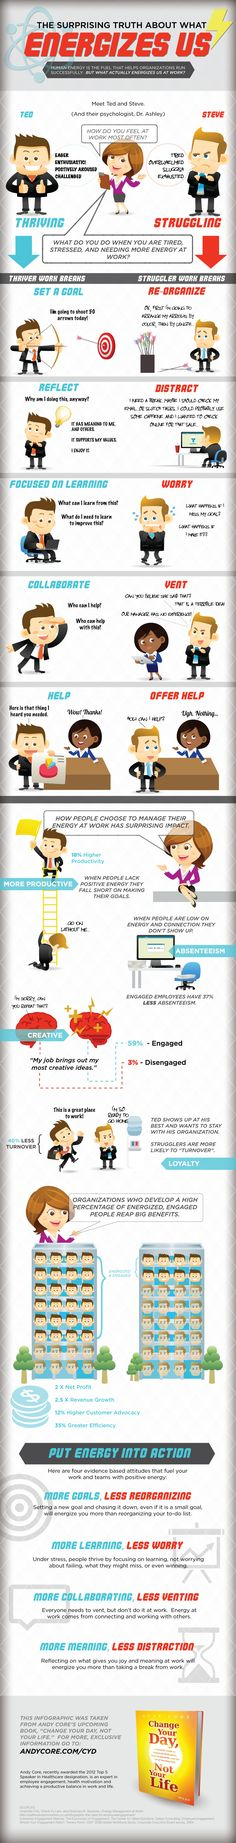 What energies us? - How to Feel More Energetic and motivated at work.